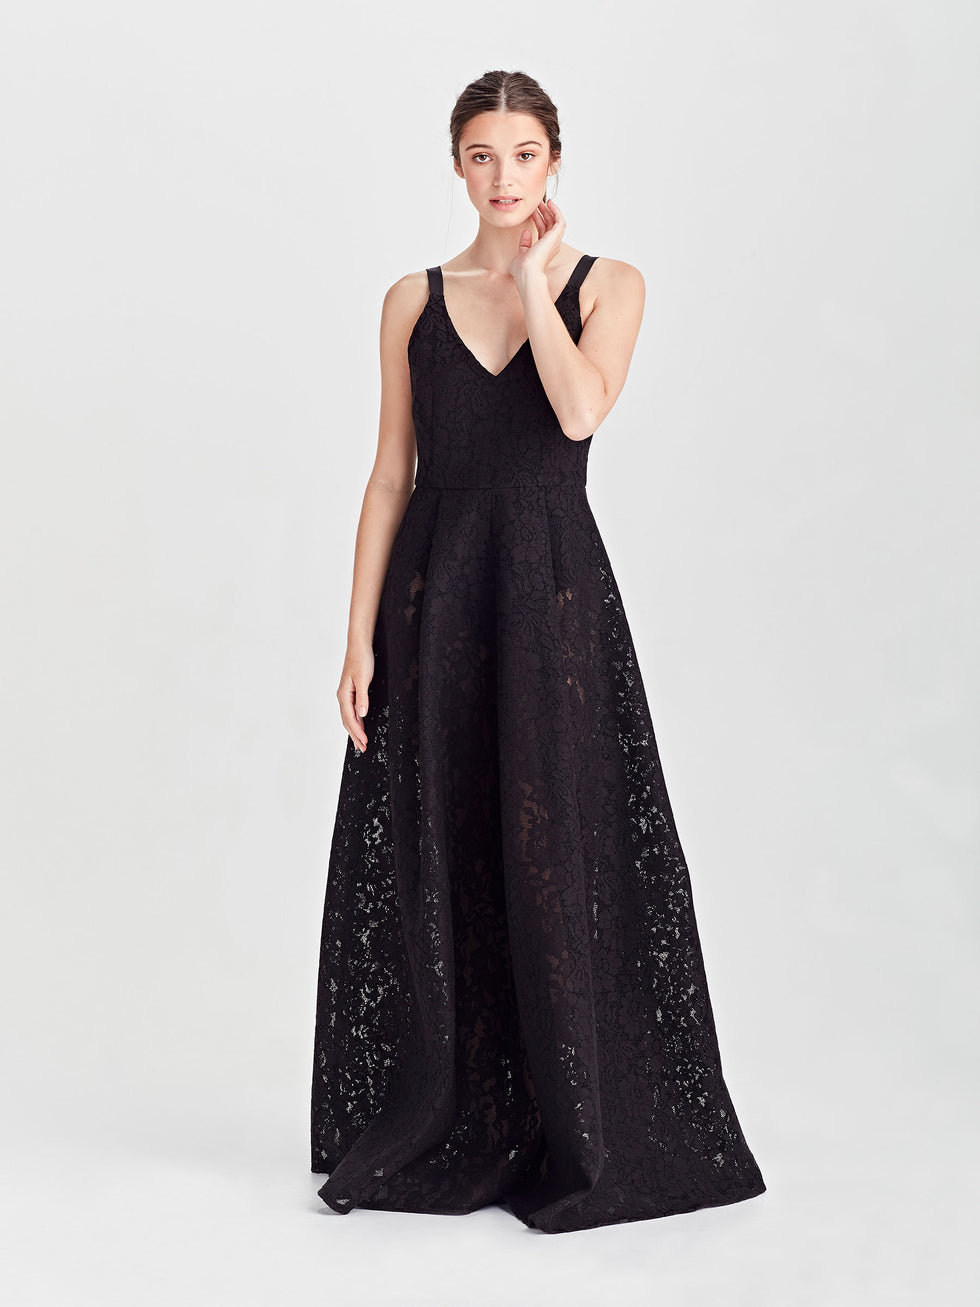 Bessie Dress (Scuba Lace) Black Lace